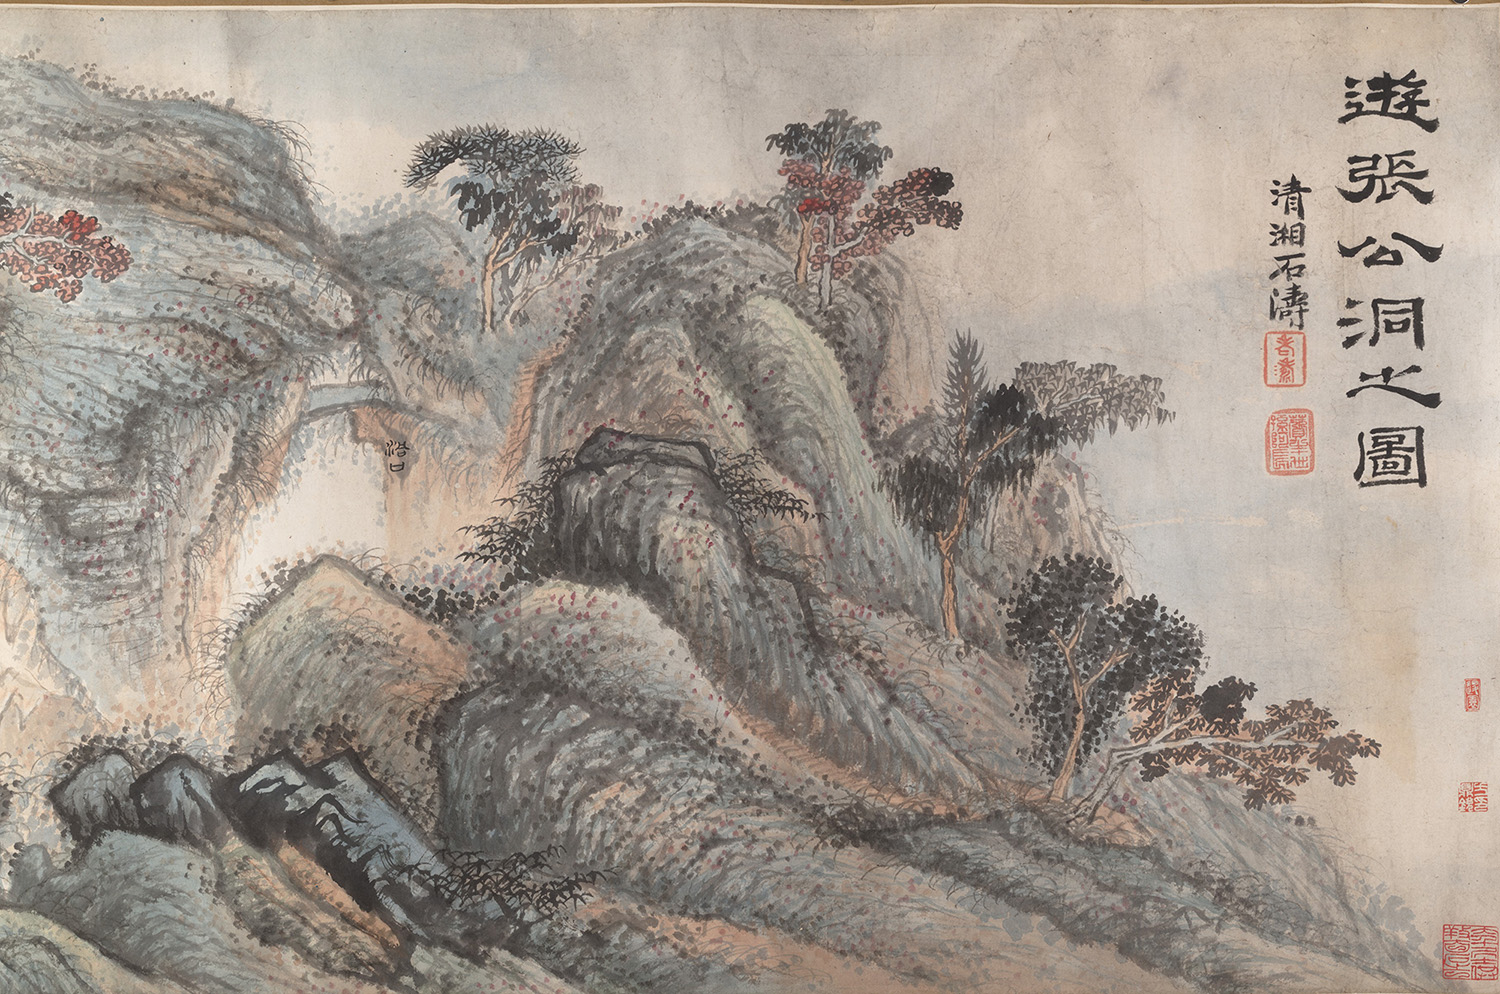 Shitao (1642-1707),  Outing to Master Zhang's Grotto  (detail), c. 1700, Metropolitan Museum of Art